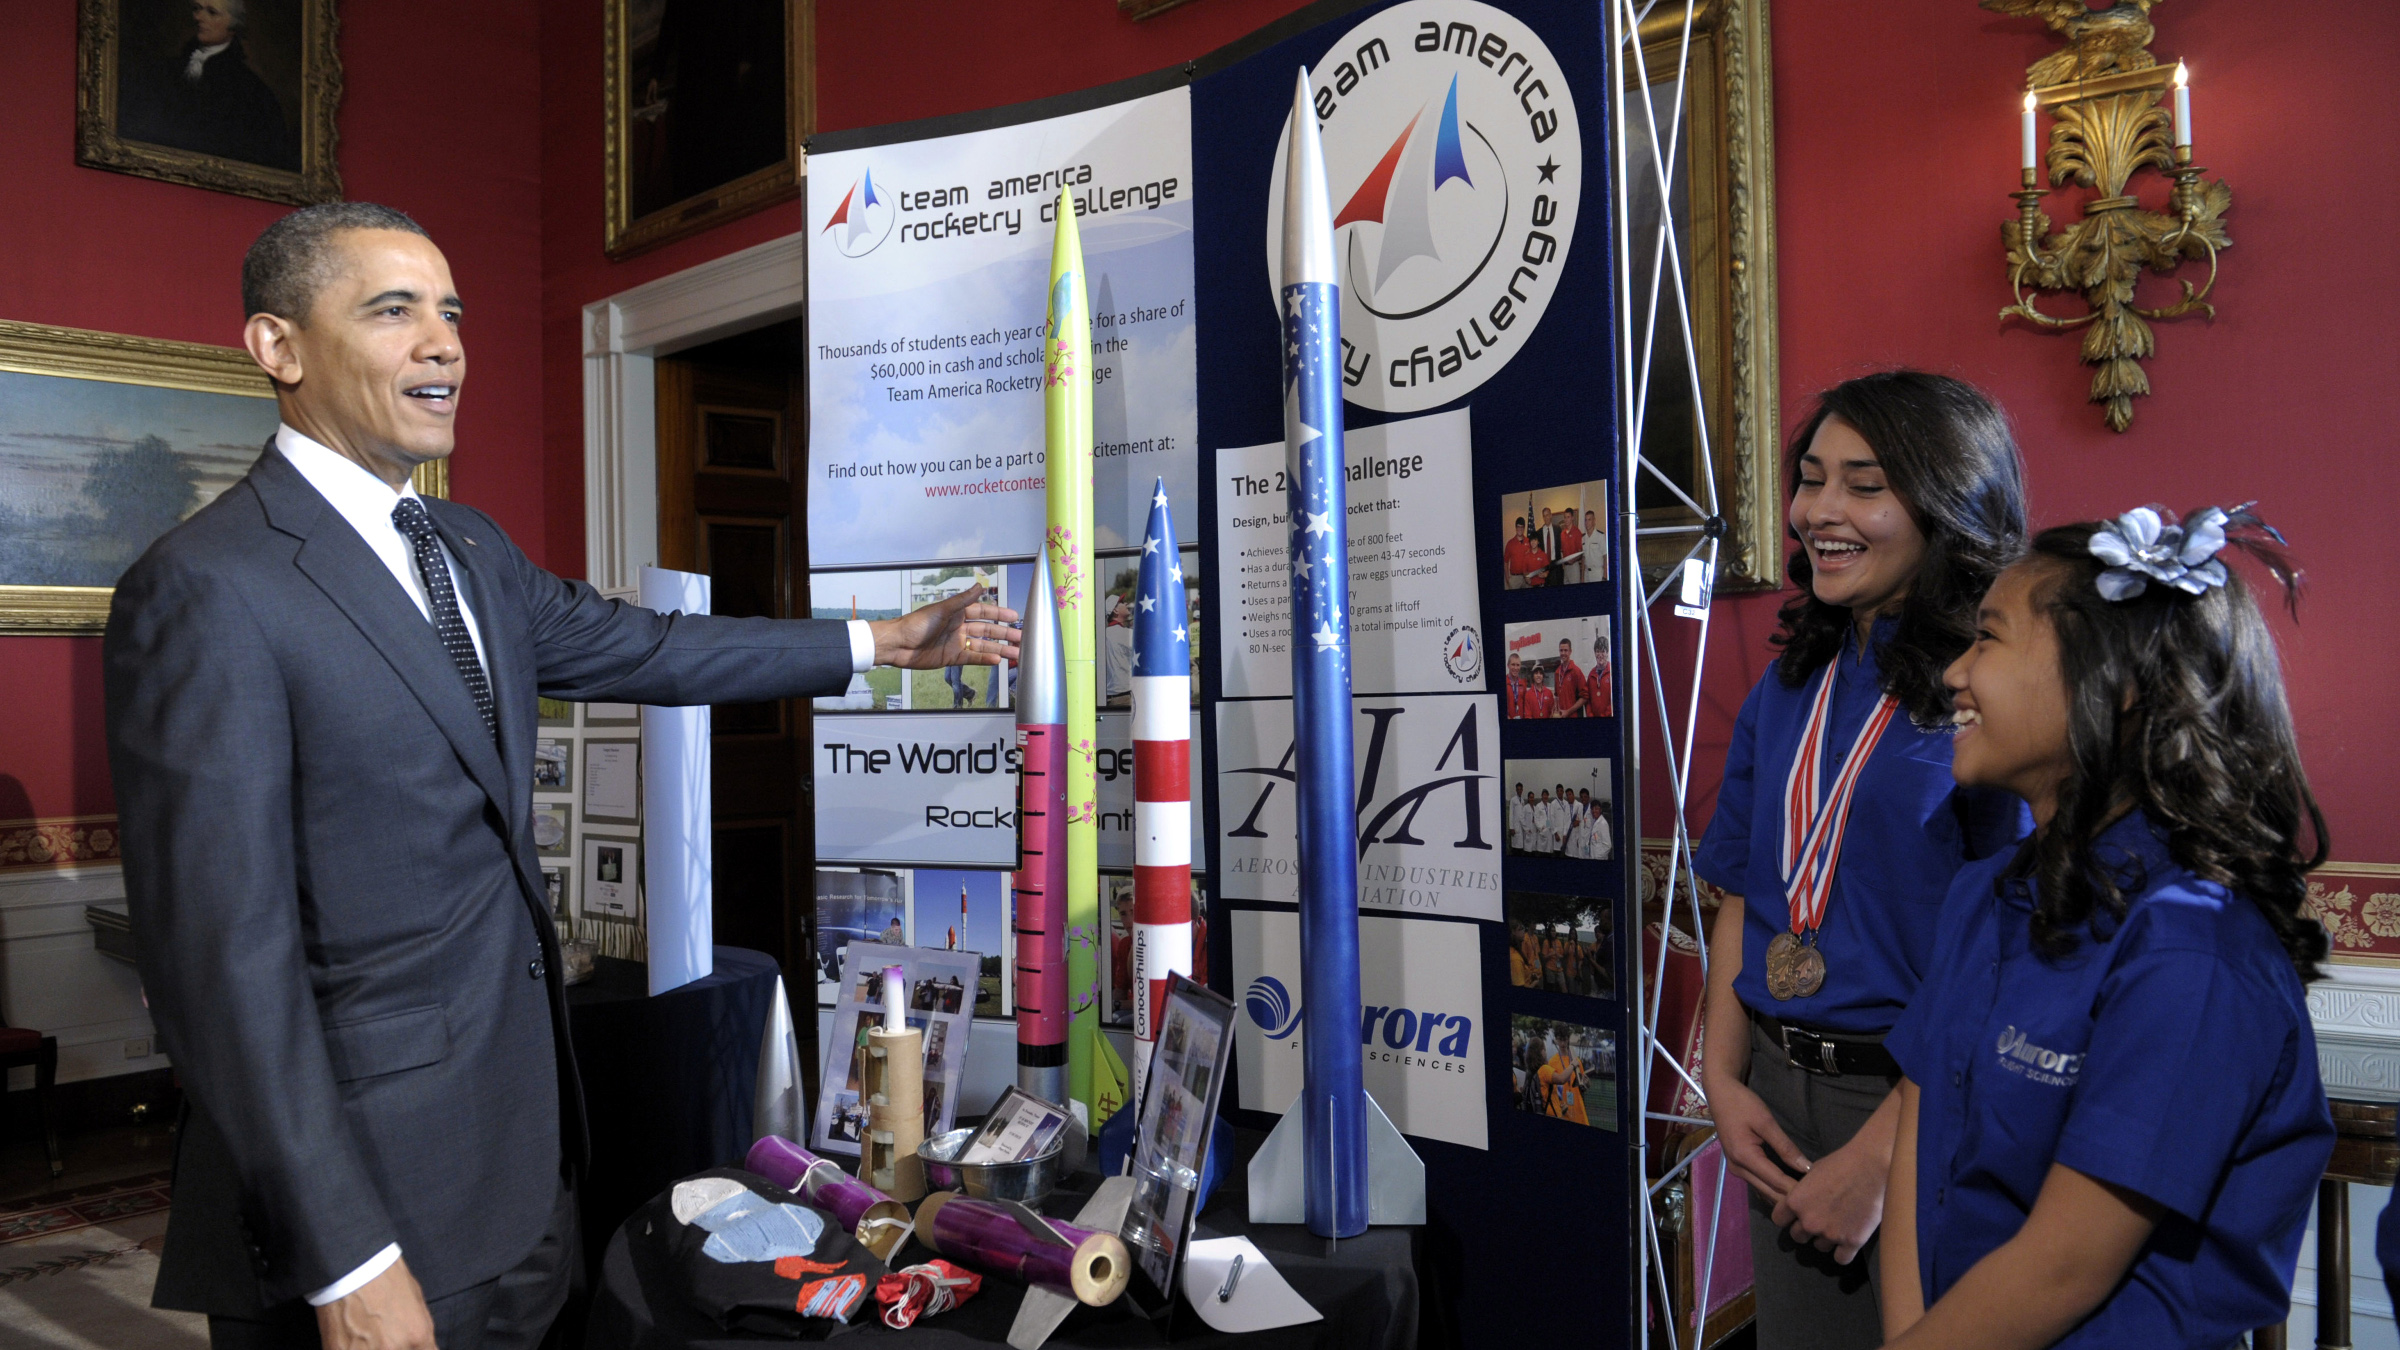 President Barack Obama talks with Janet Nieto, second from right, Gwynelle Condino, right, both from Presidio, Texas, in the State Dining Room of the White House in Washington, Tuesday, Feb. 7, 2012, for the White House Science Fair. Both girls have successfully competed in a number of rocketry challenges and have attended the NASA Student Launch Initiative Advanced Rocketry program. Obama hosted the second White House Science Fair celebrating the student winners of a broad range of science, technology, engineering and math (STEM) competitions from across the country.